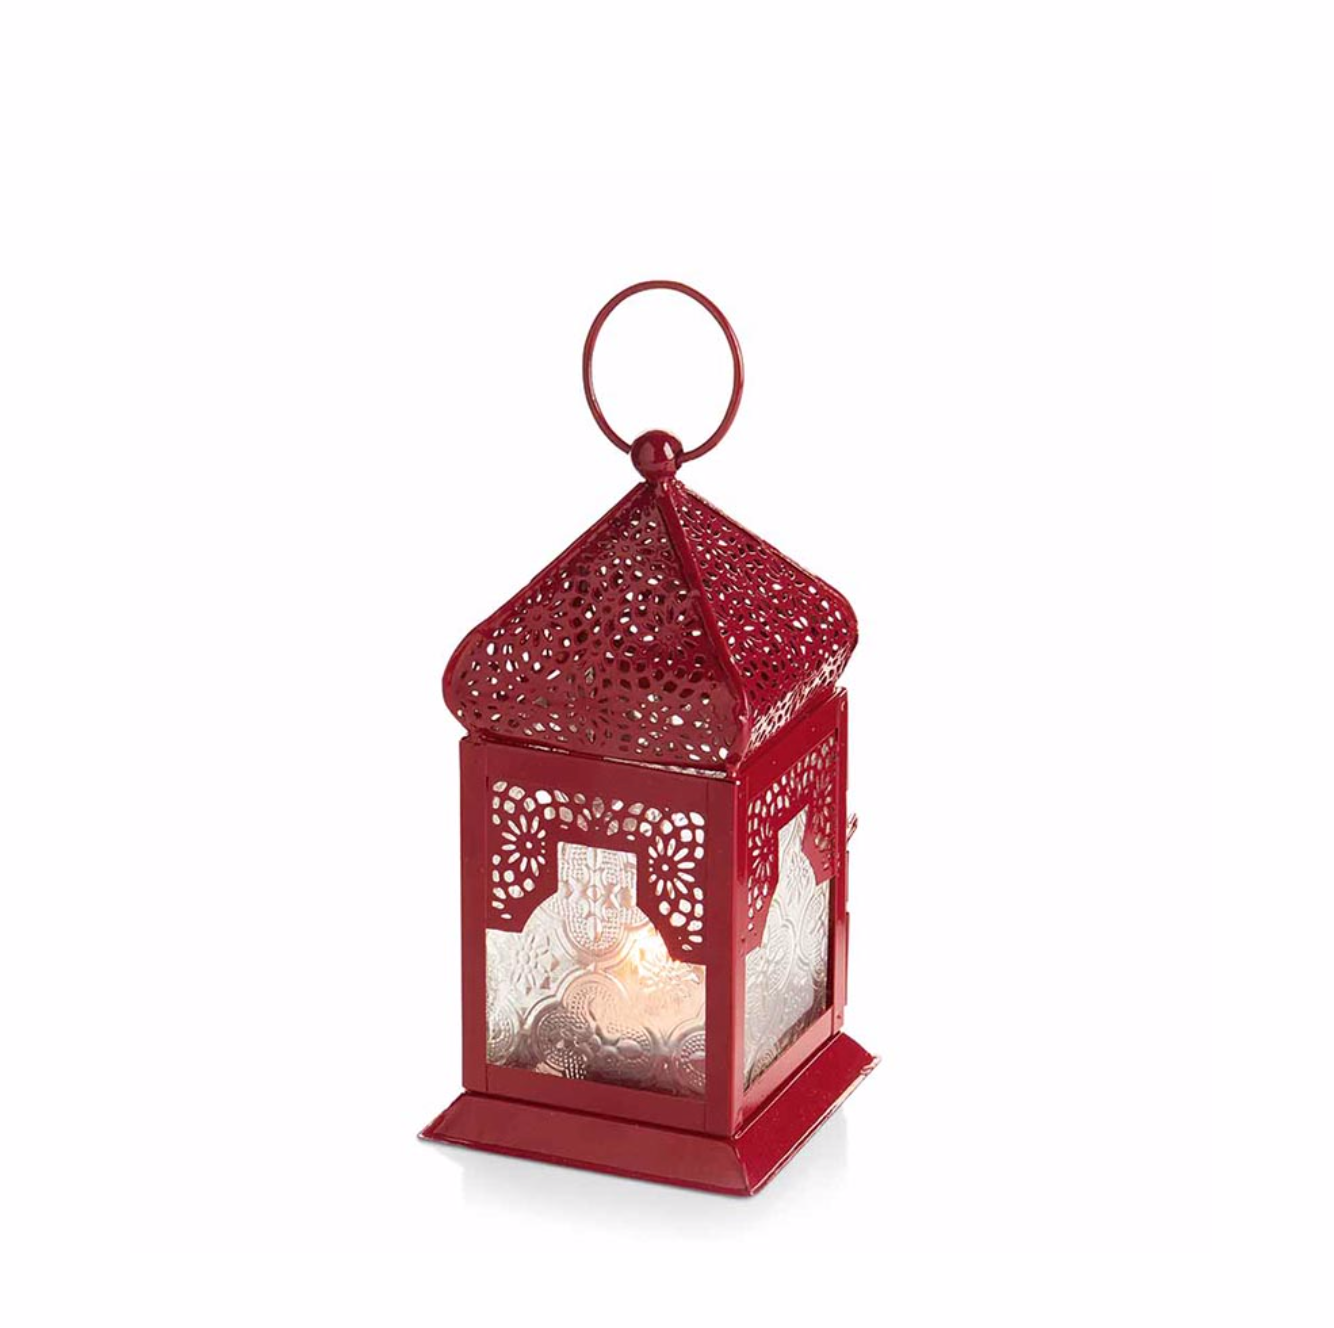 Glowing Lanterns in Holiday Red - do good shop ethical gifts